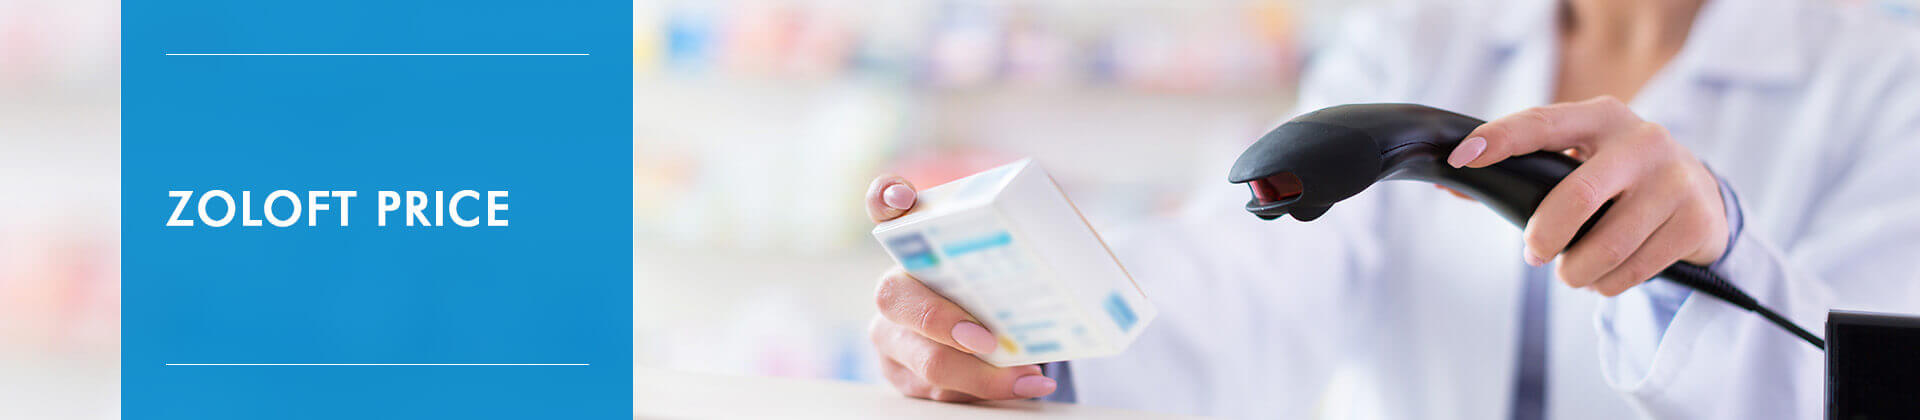 Pharmacist scanning product